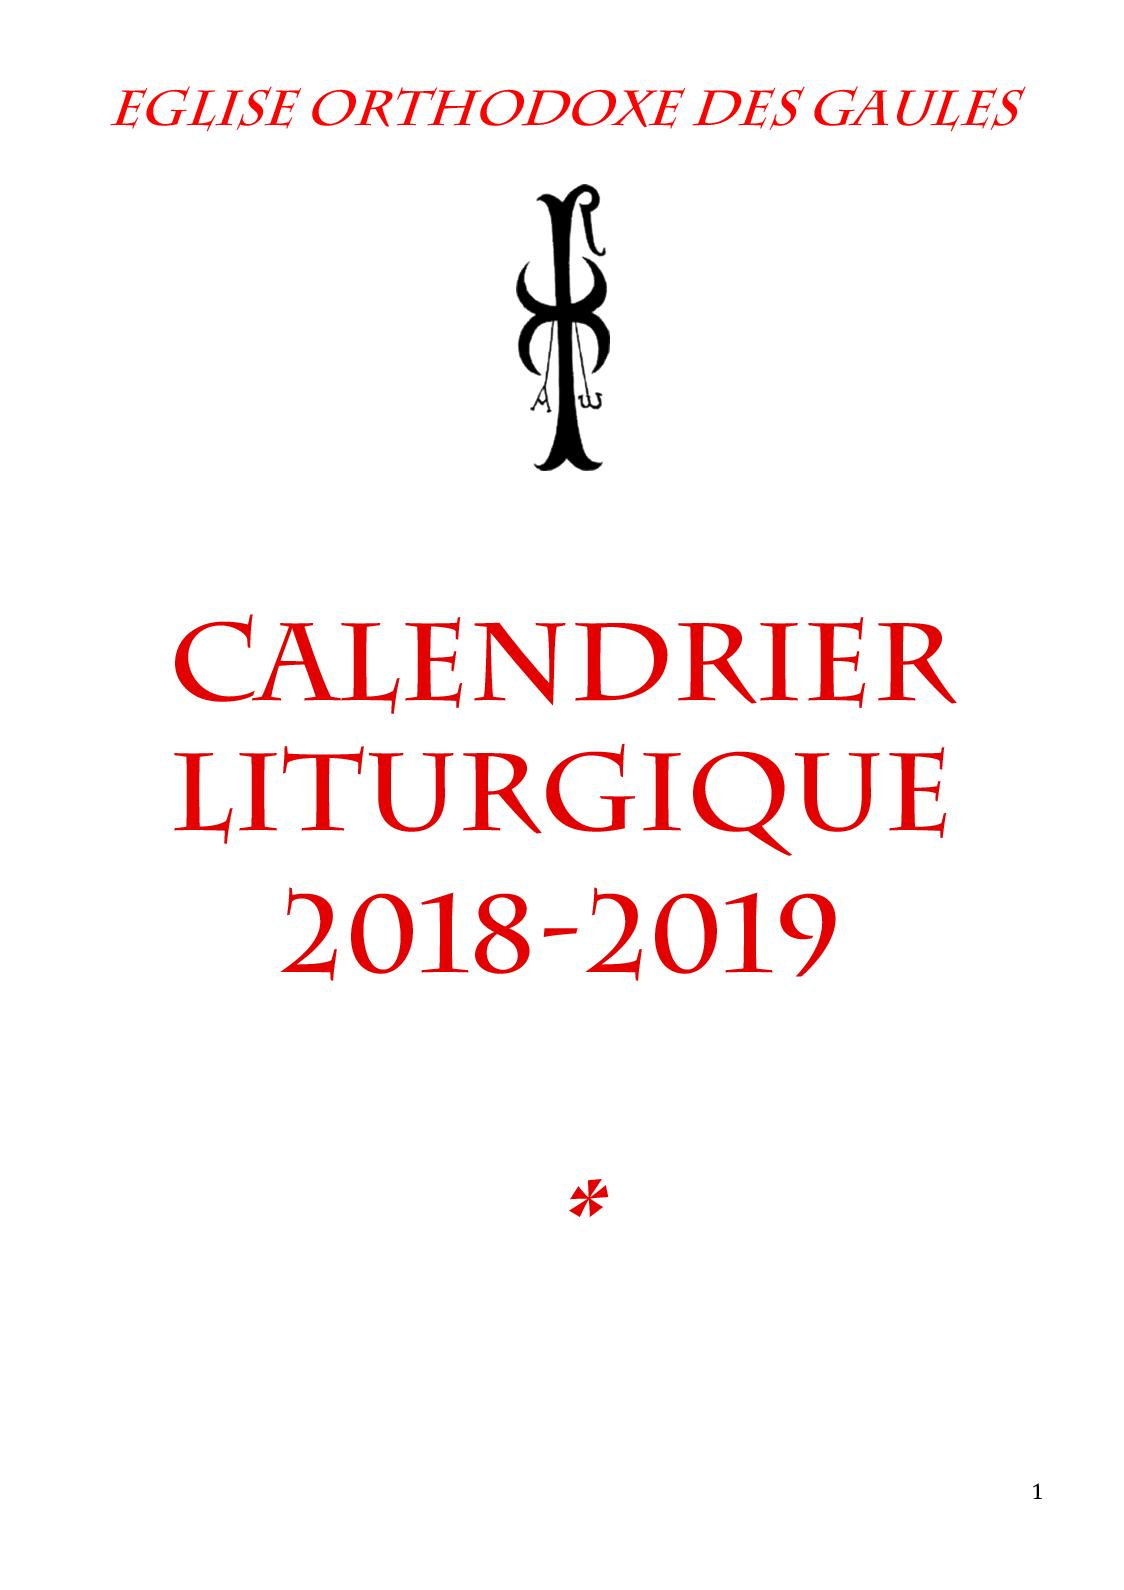 Calendrier Paul Valery.Calameo Calendrier Eglise Orthodoxe Gaules 2018 2019